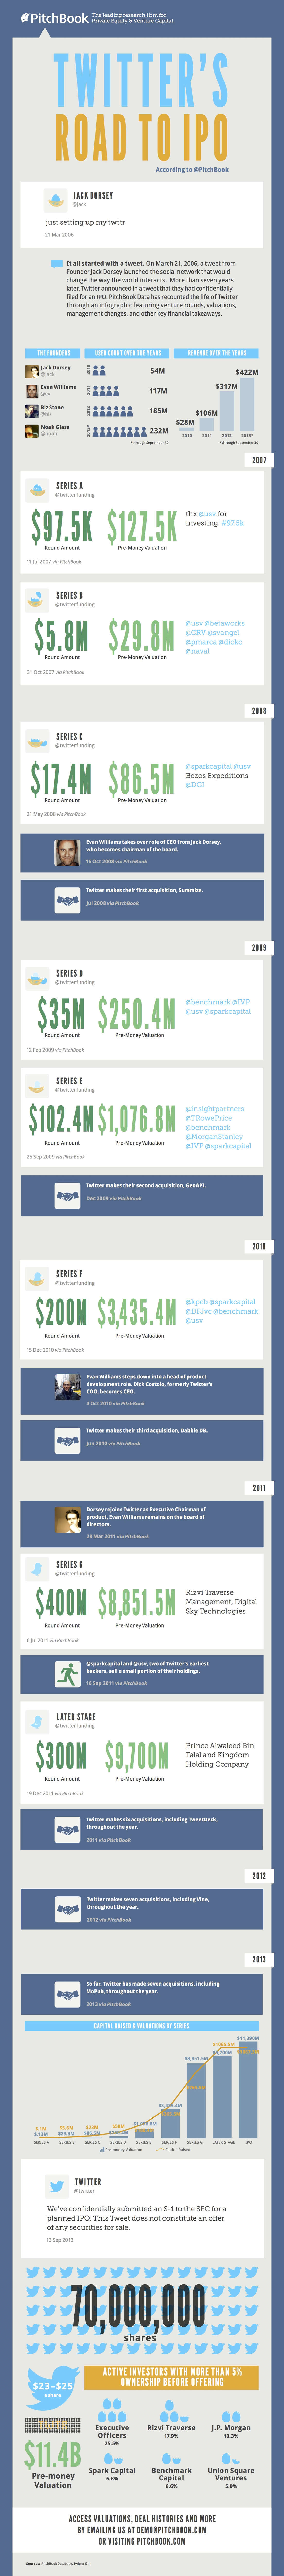 From Jack Dorsey S Tweet To The Nyse Twitter S Road To Ipo Infographic Startup News Social Media Infographic Infographic